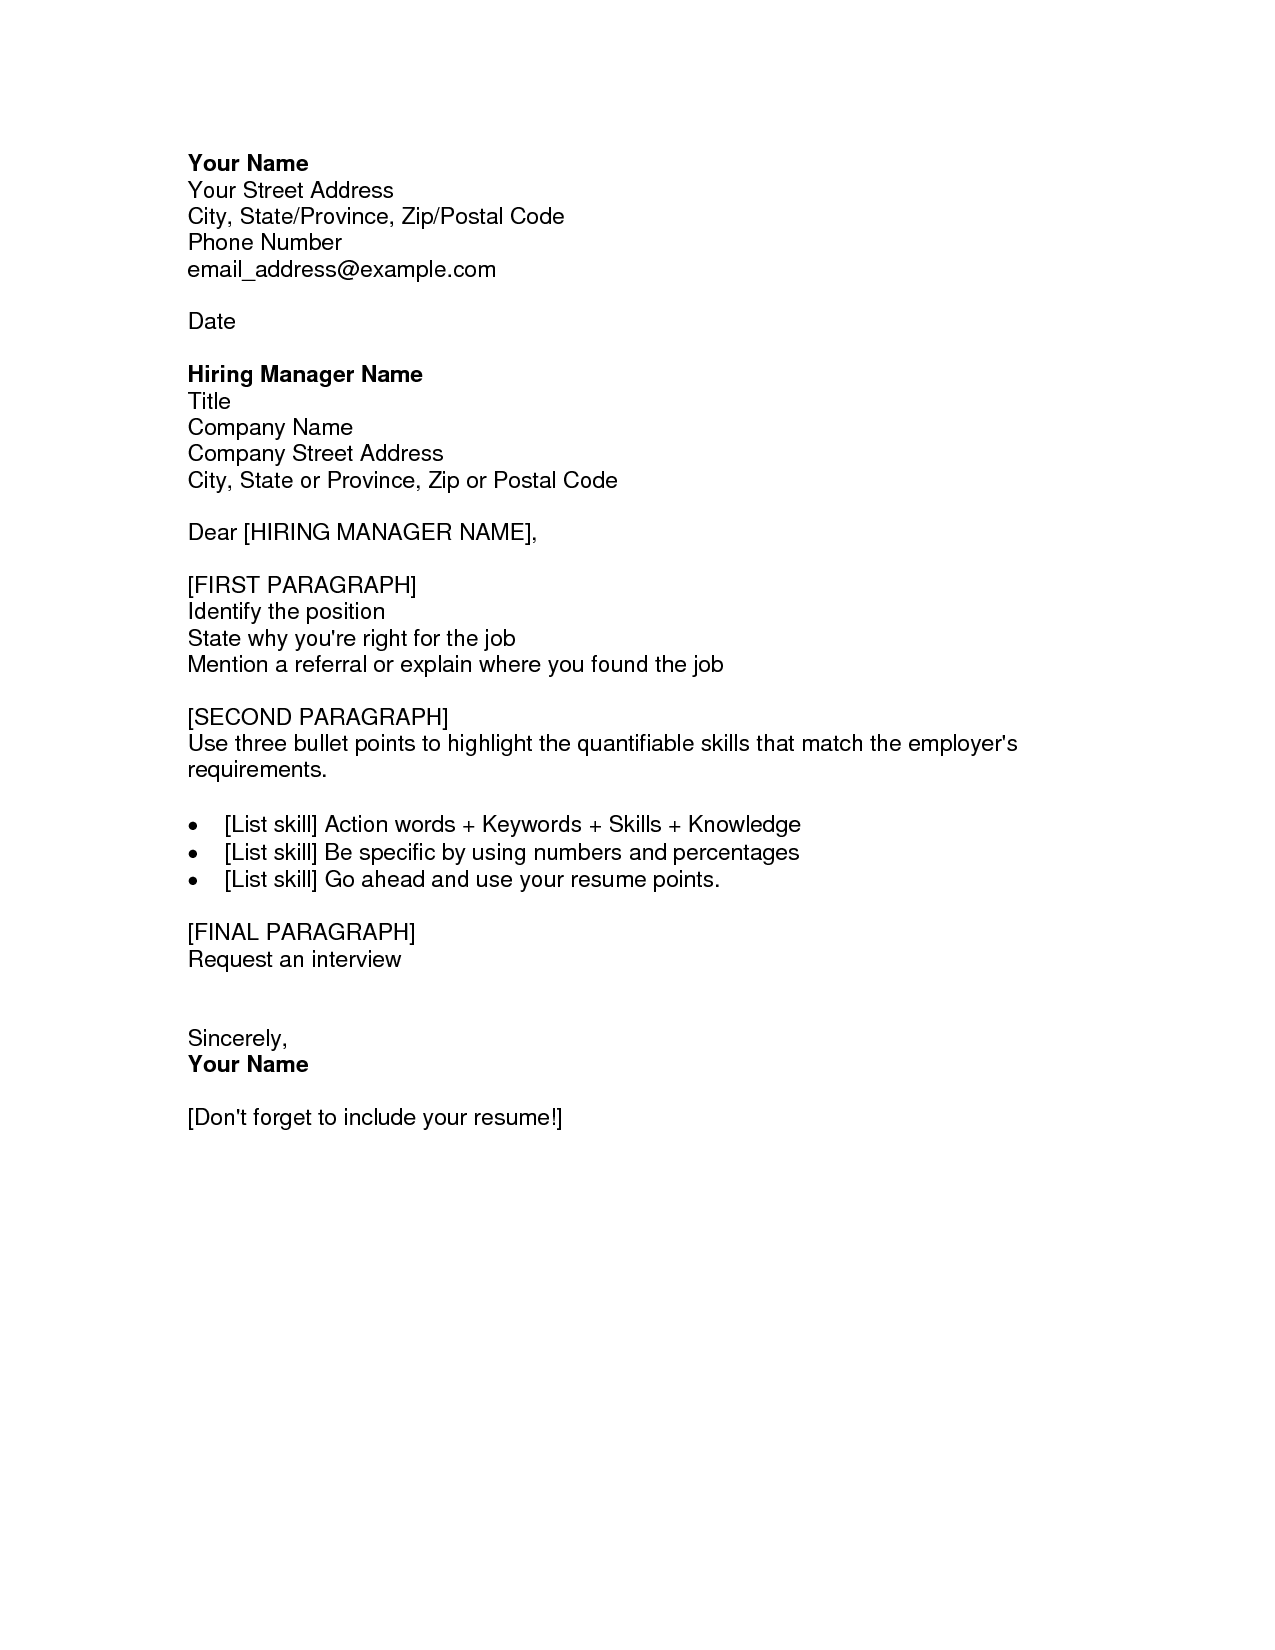 Sample Cover Letter Harvard   Guamreview Com